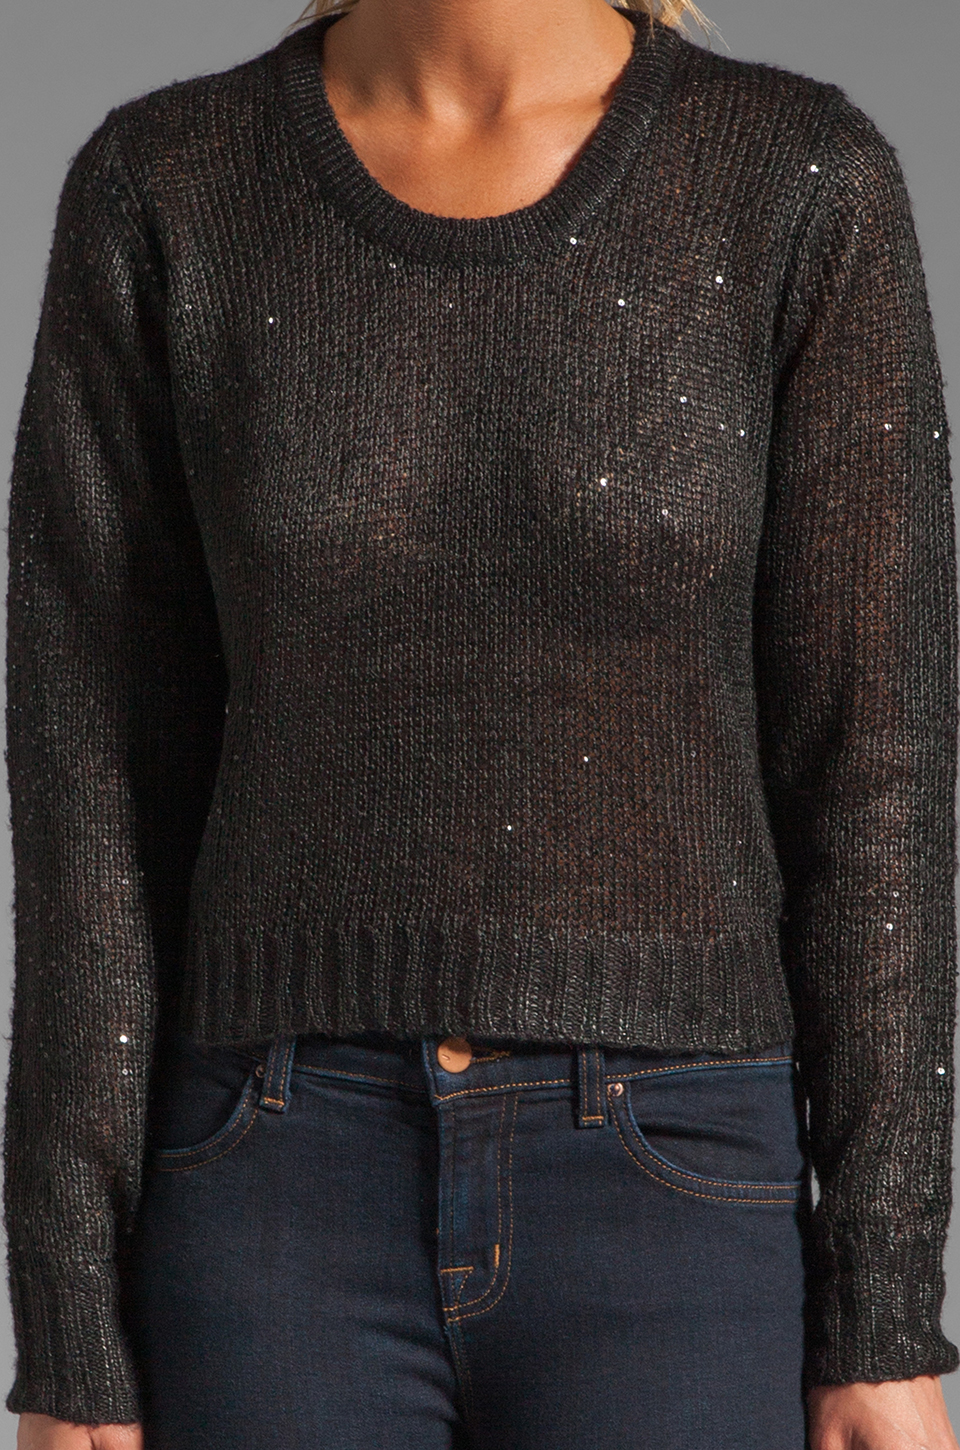 Line Roger Sequin Sweater in Caviar